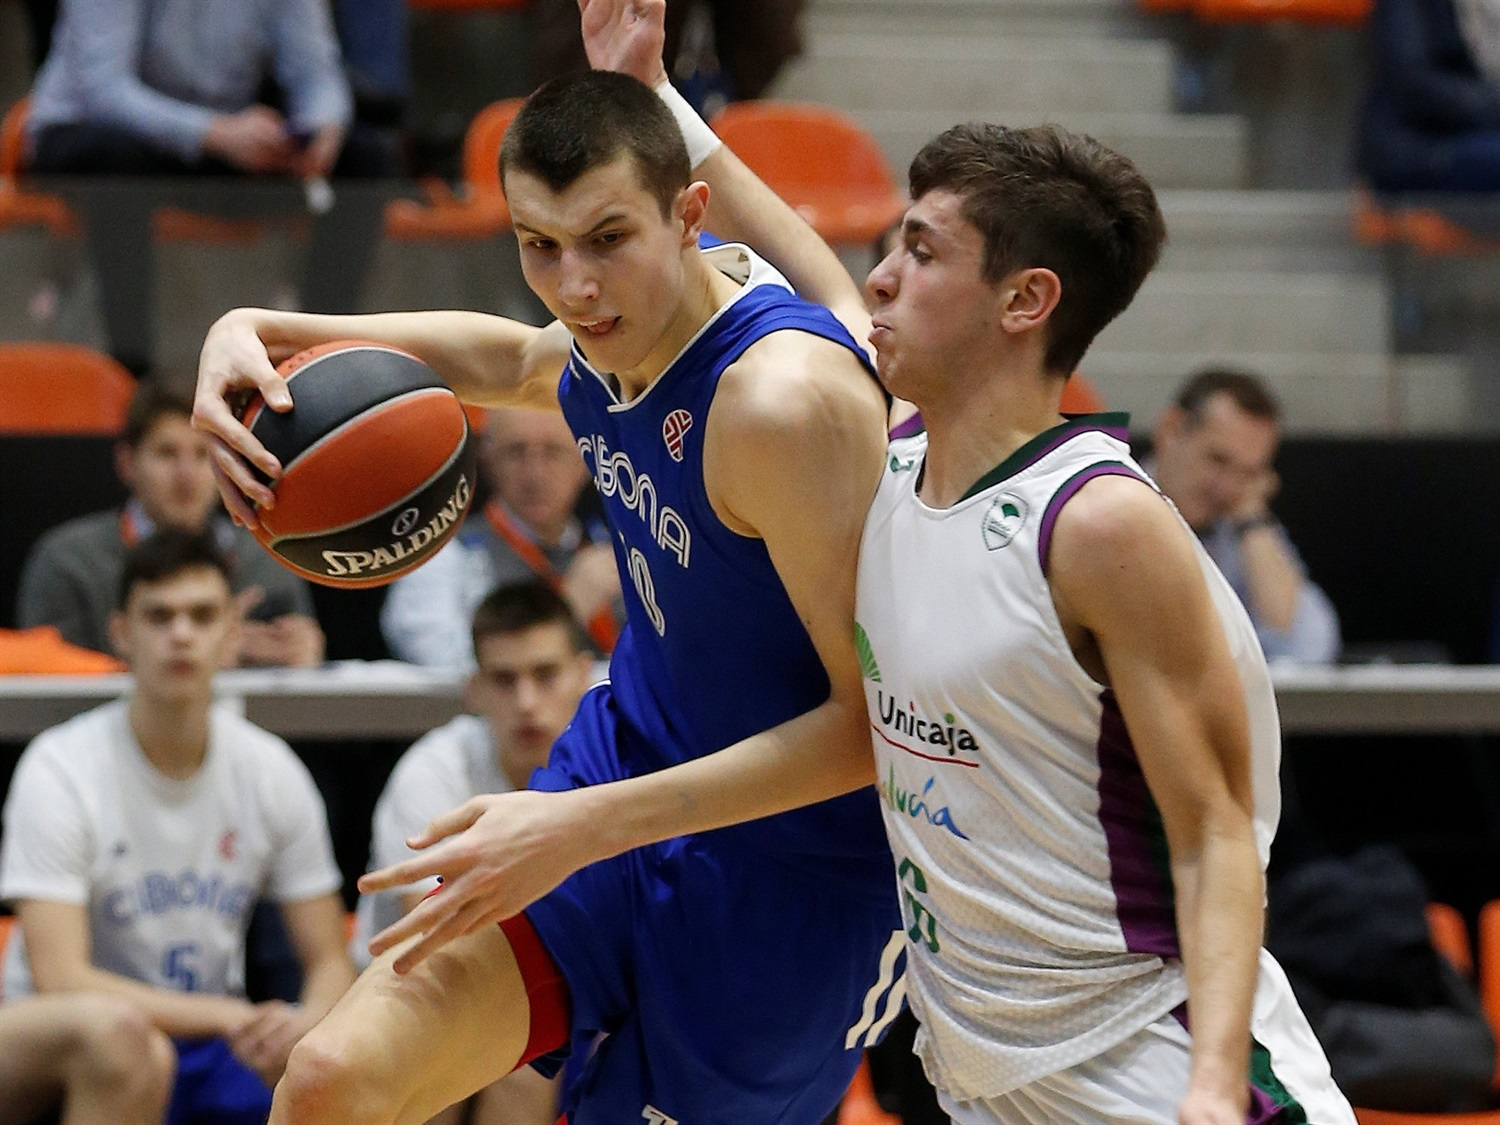 Zvonimir Ivisic - U18 Cibona Zagreb - ANGT Valencia 2019-20 (photo Miguel Angel Polo) - JT19